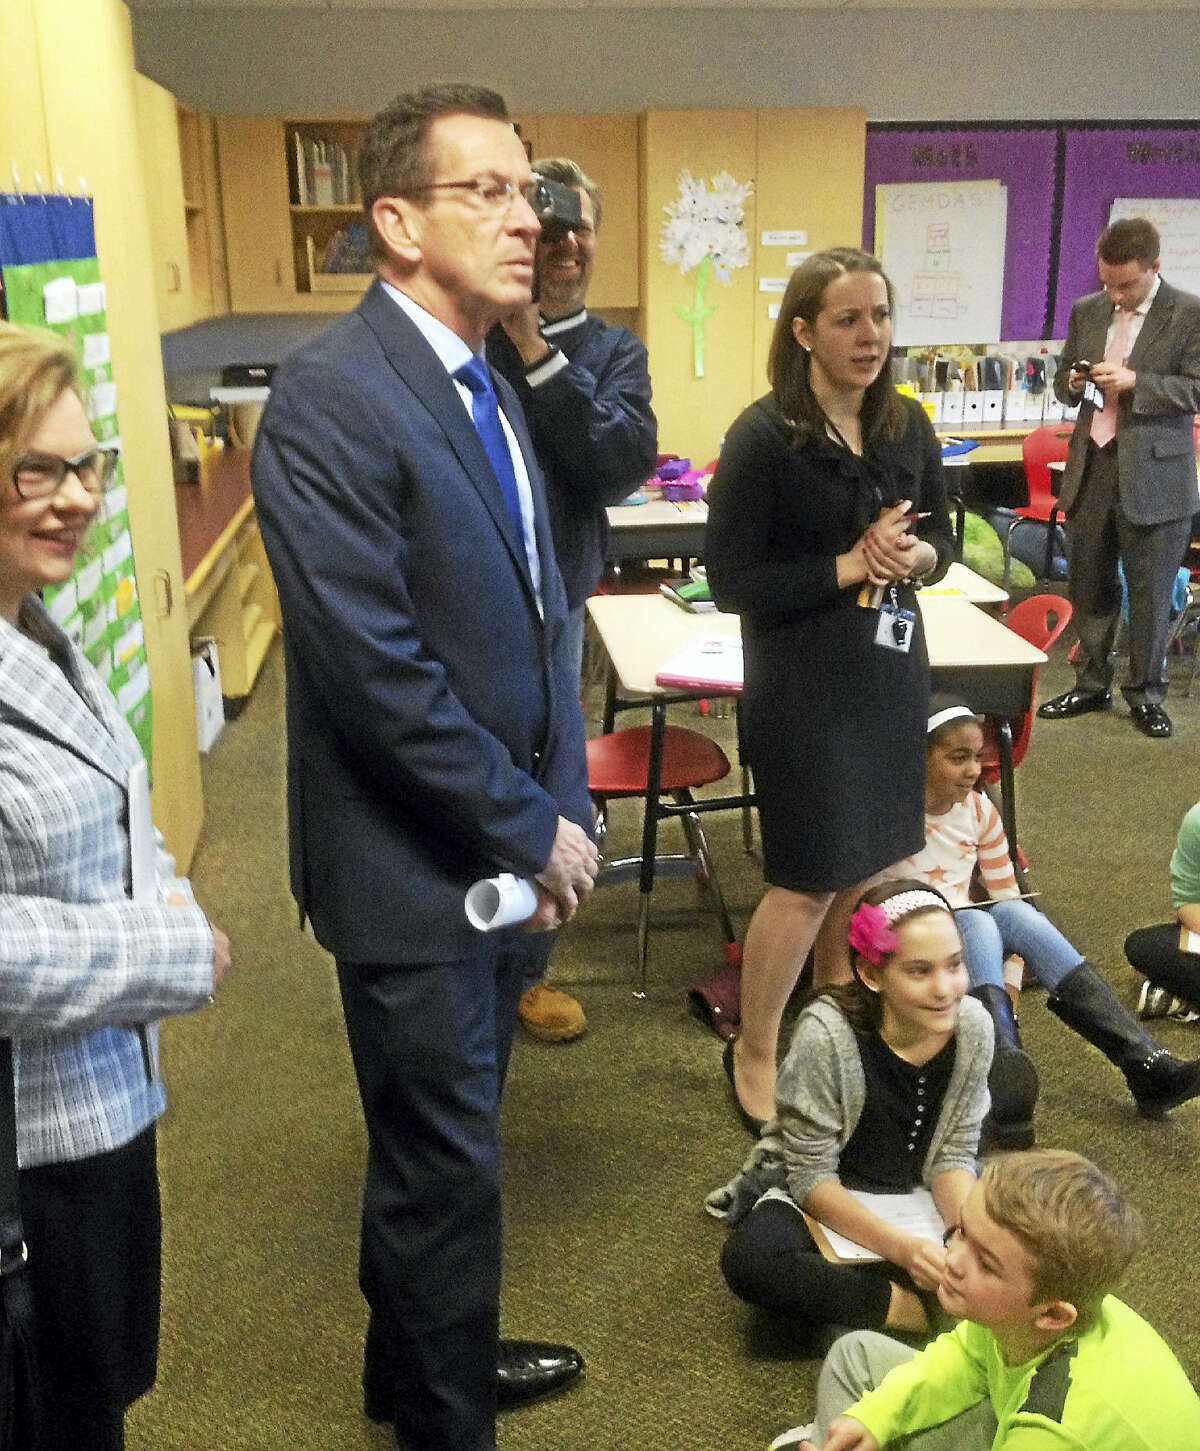 Malloy speaks to students during a tour of the school.